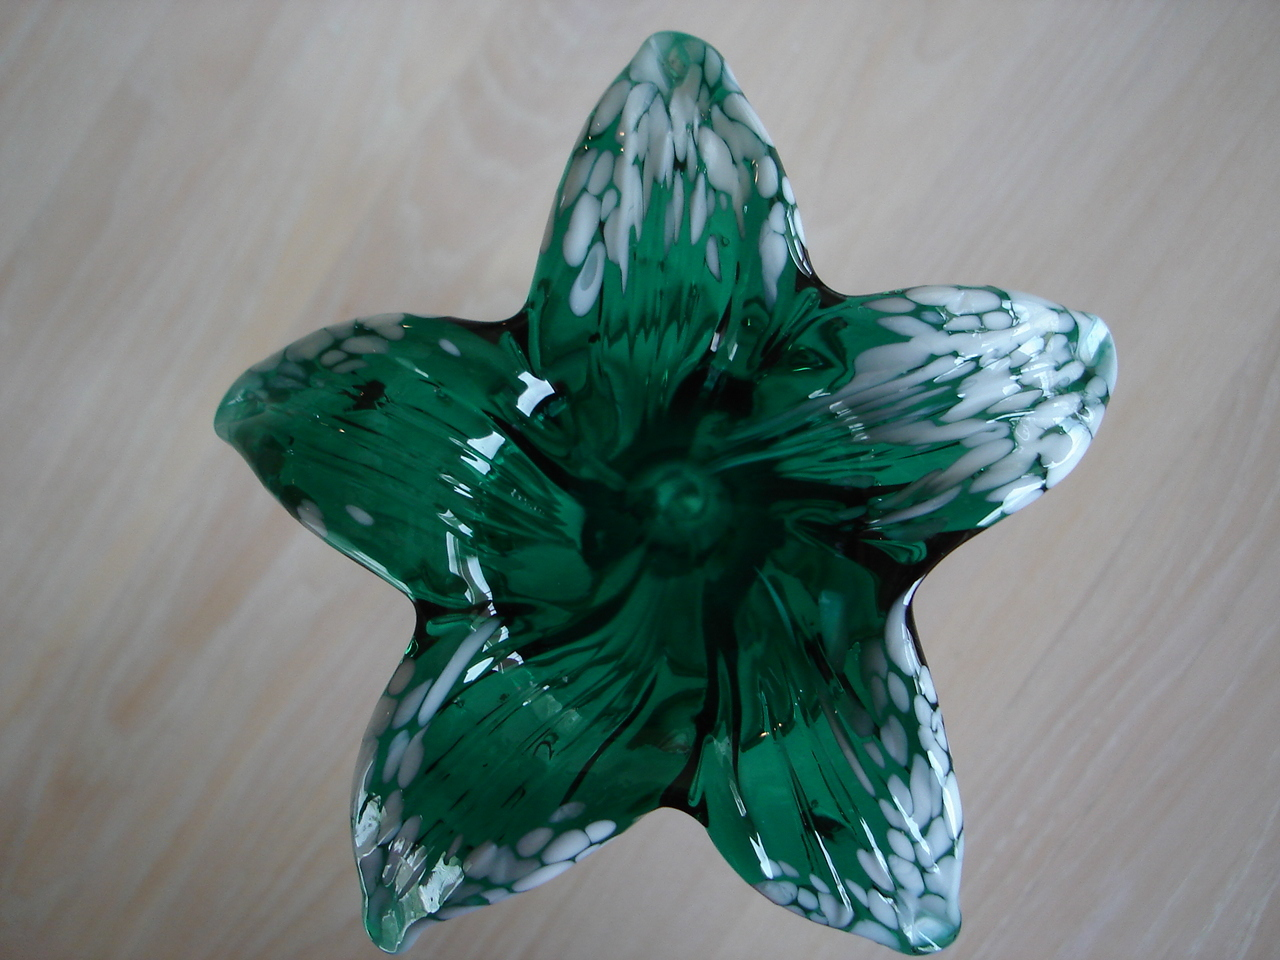 Studio Art Glass Dark Green White Drip Petals Lily Flower Bud Vase,Circular Stem